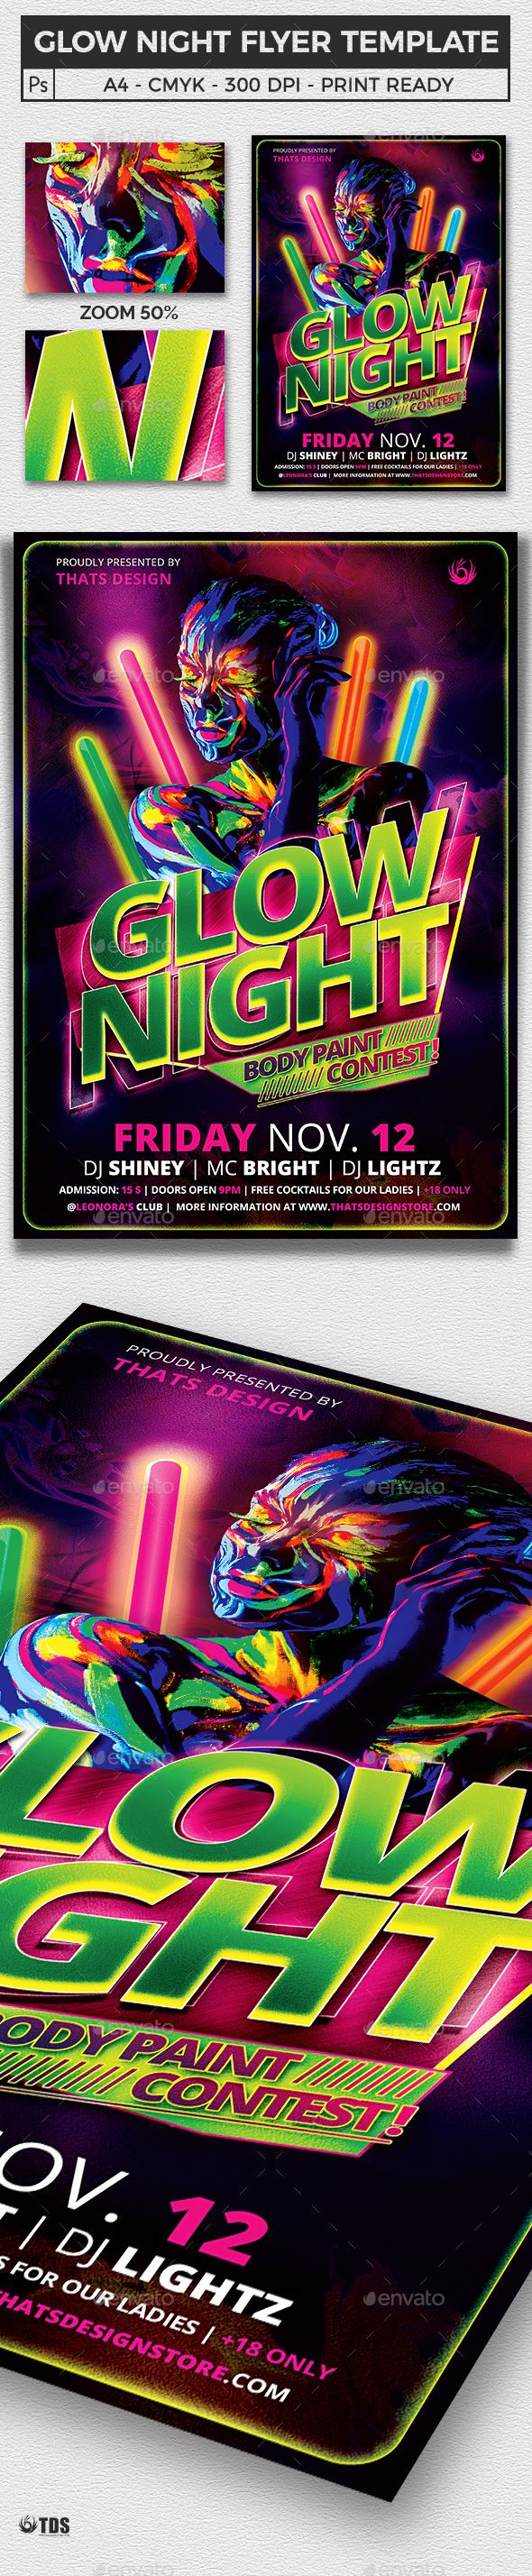 Glow Night Flyer Template Flyer template, Templates